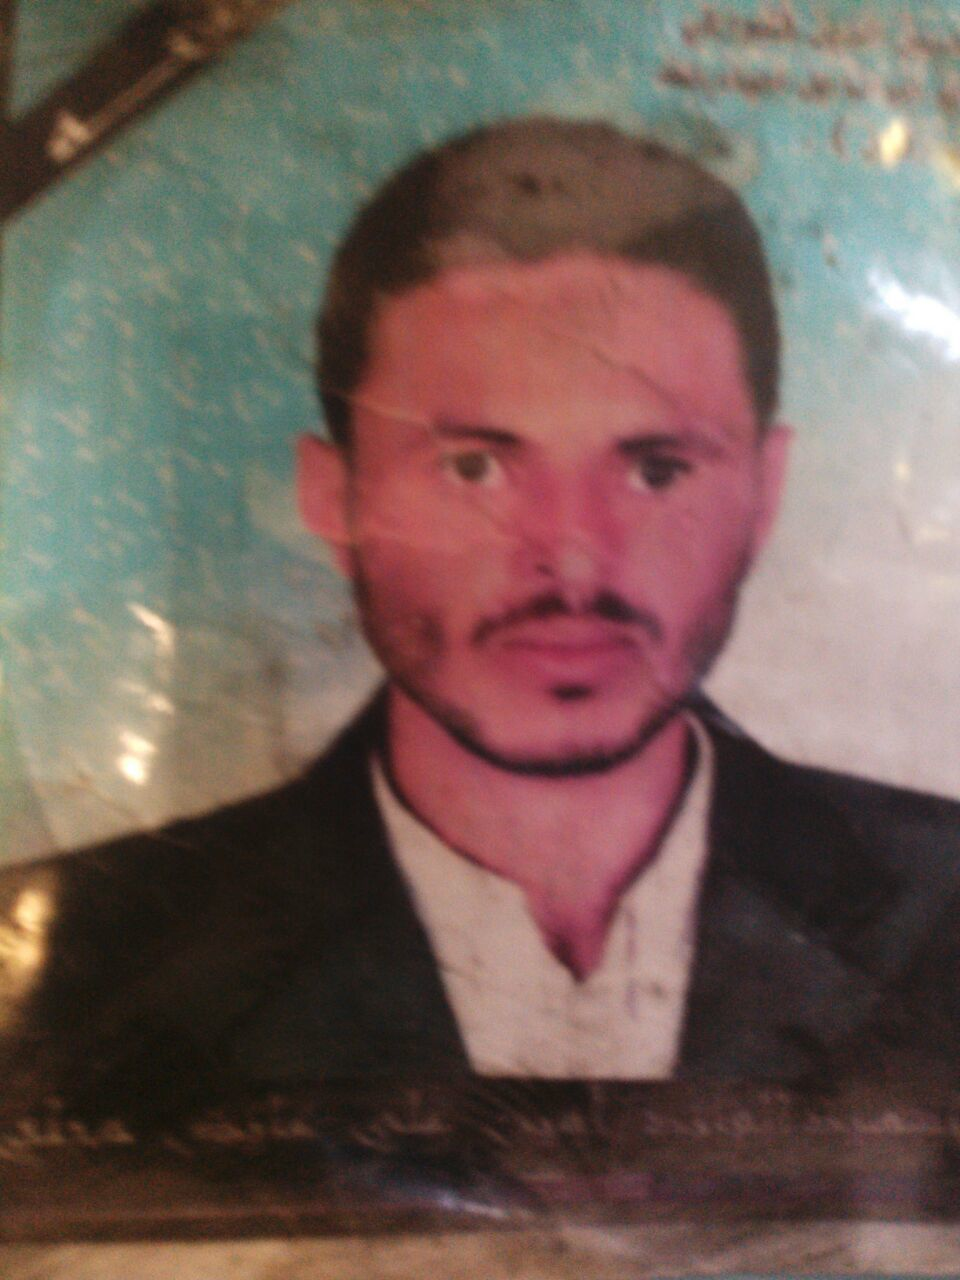 A photo of Ameen Ali Ayid, who was killed fighting against the Houthi rebels in Yemen in June 2015